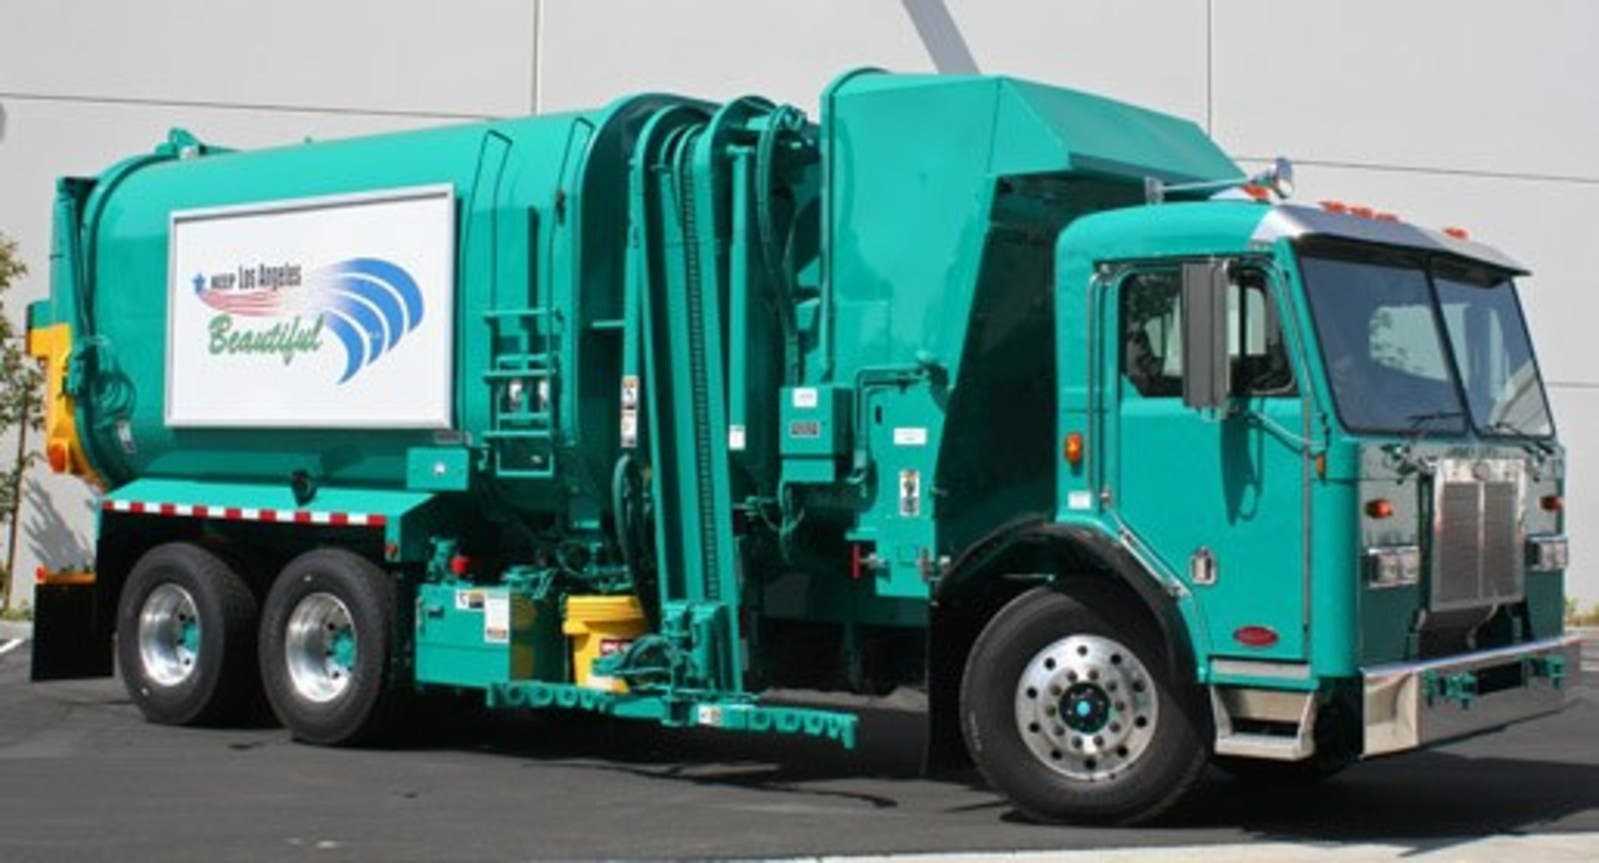 Motiv Power Systems Deploying 2 All-Electric Garbage Trucks In Los Angeles